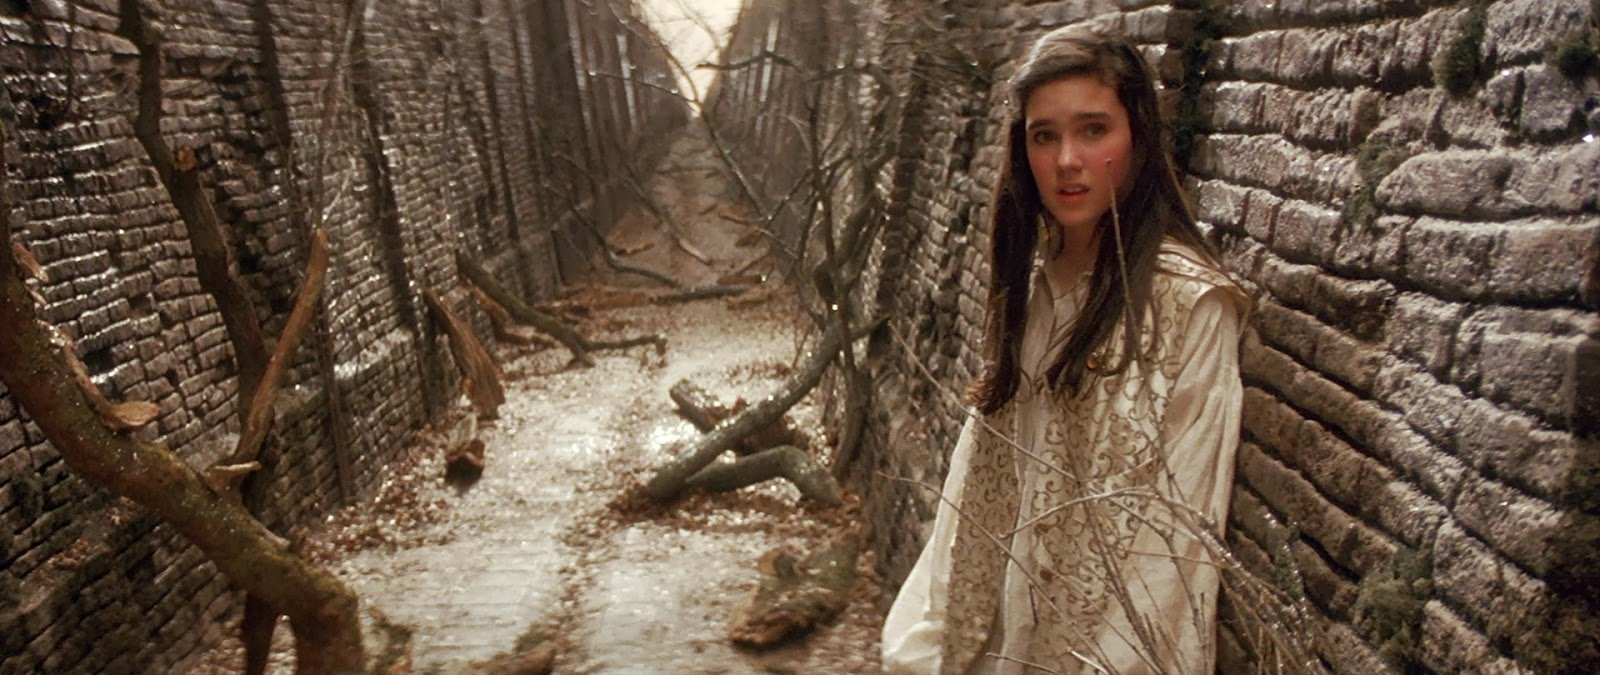 7 Important Life Lessons Learned From Labyrinth | The Mary Sue Labyrinth 1986 Sarah